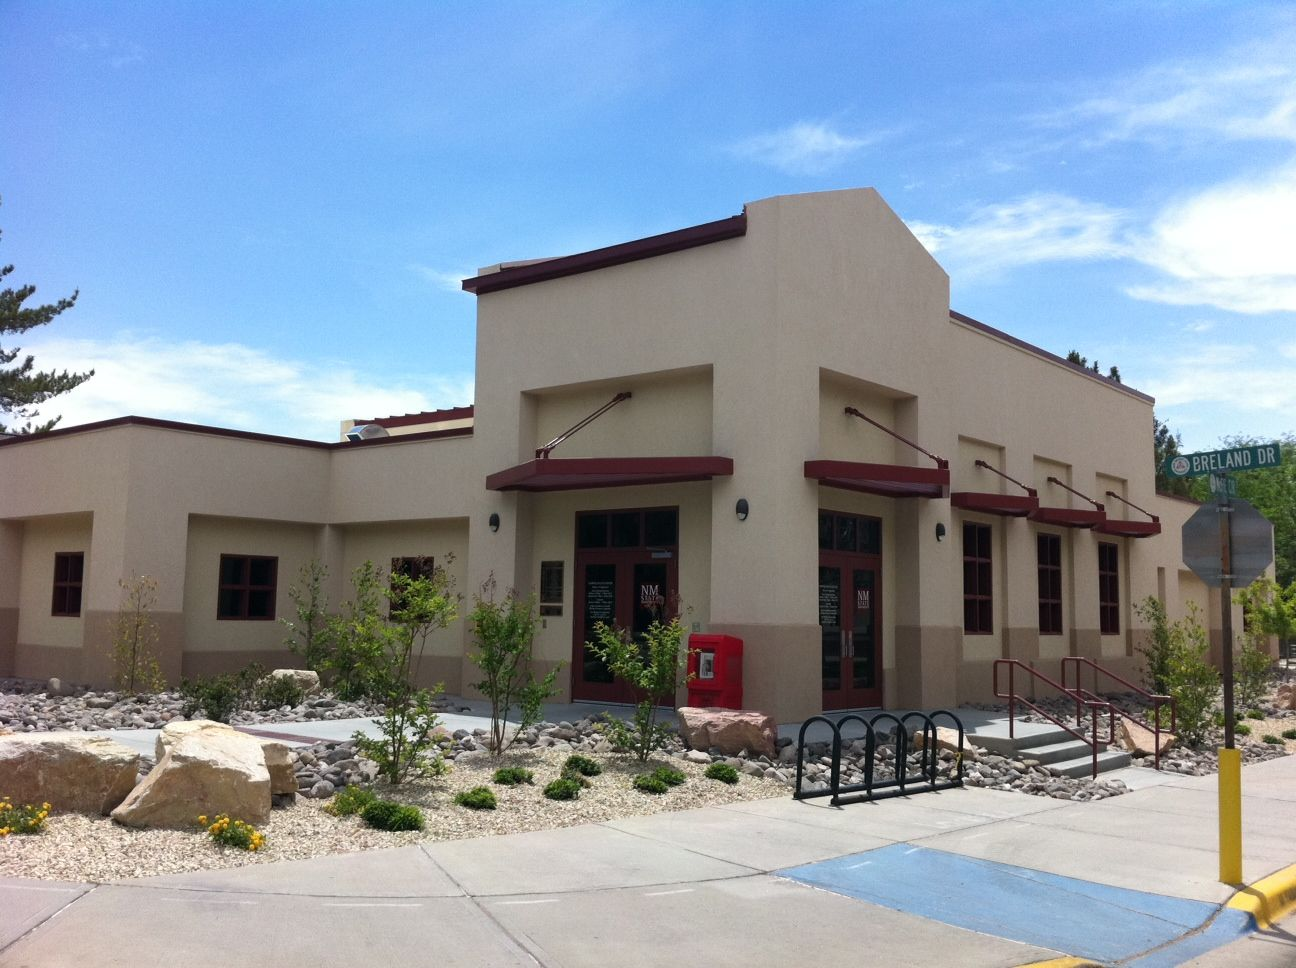 Campus Health Center New Mexico State University Las Cruces Nm With Williams Design Group Pro New Mexico